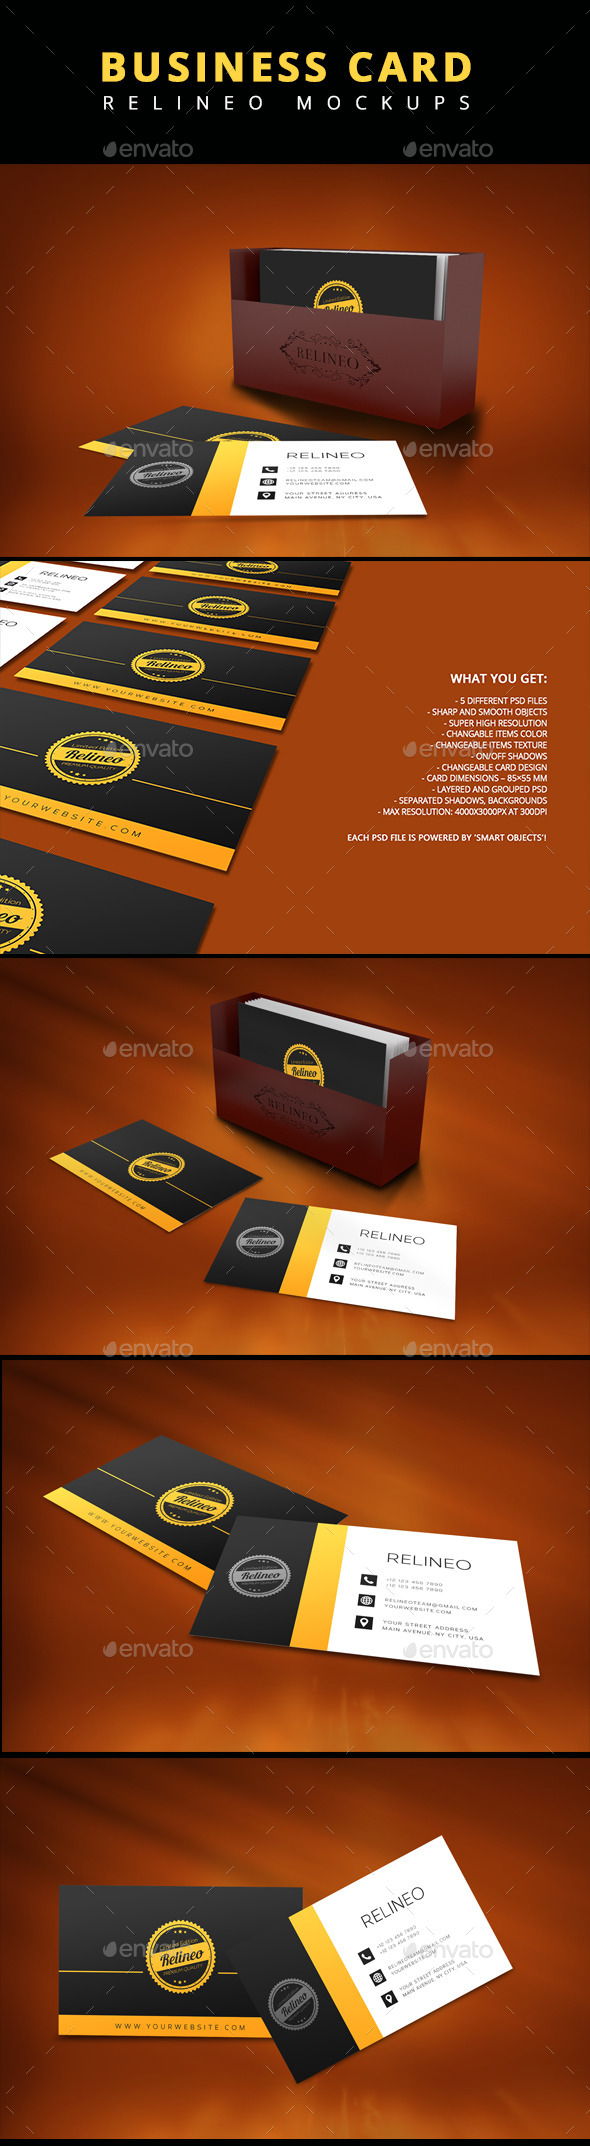 Business Card Mock-up Pack Vol.1 - Business Cards Print